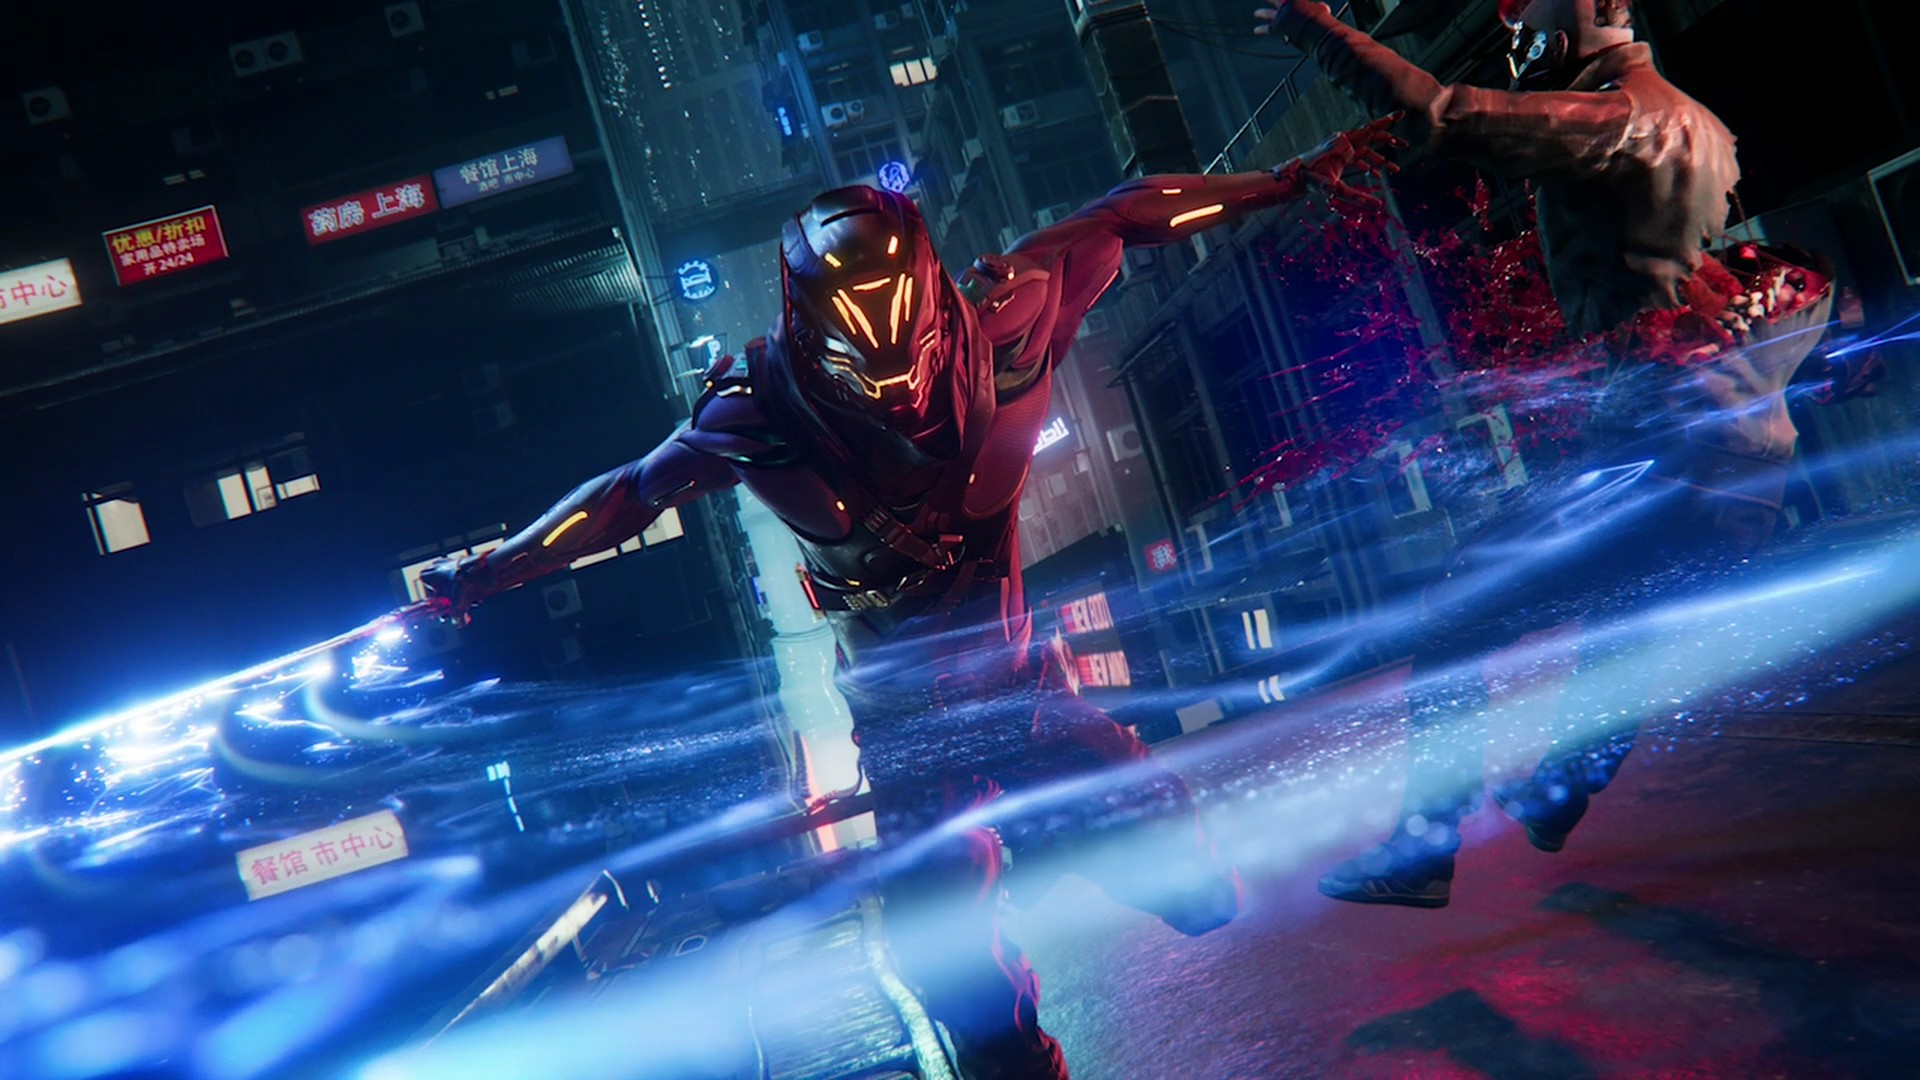 Cyberpunk slasher Ghostrunner is getting a photo mode and time trials